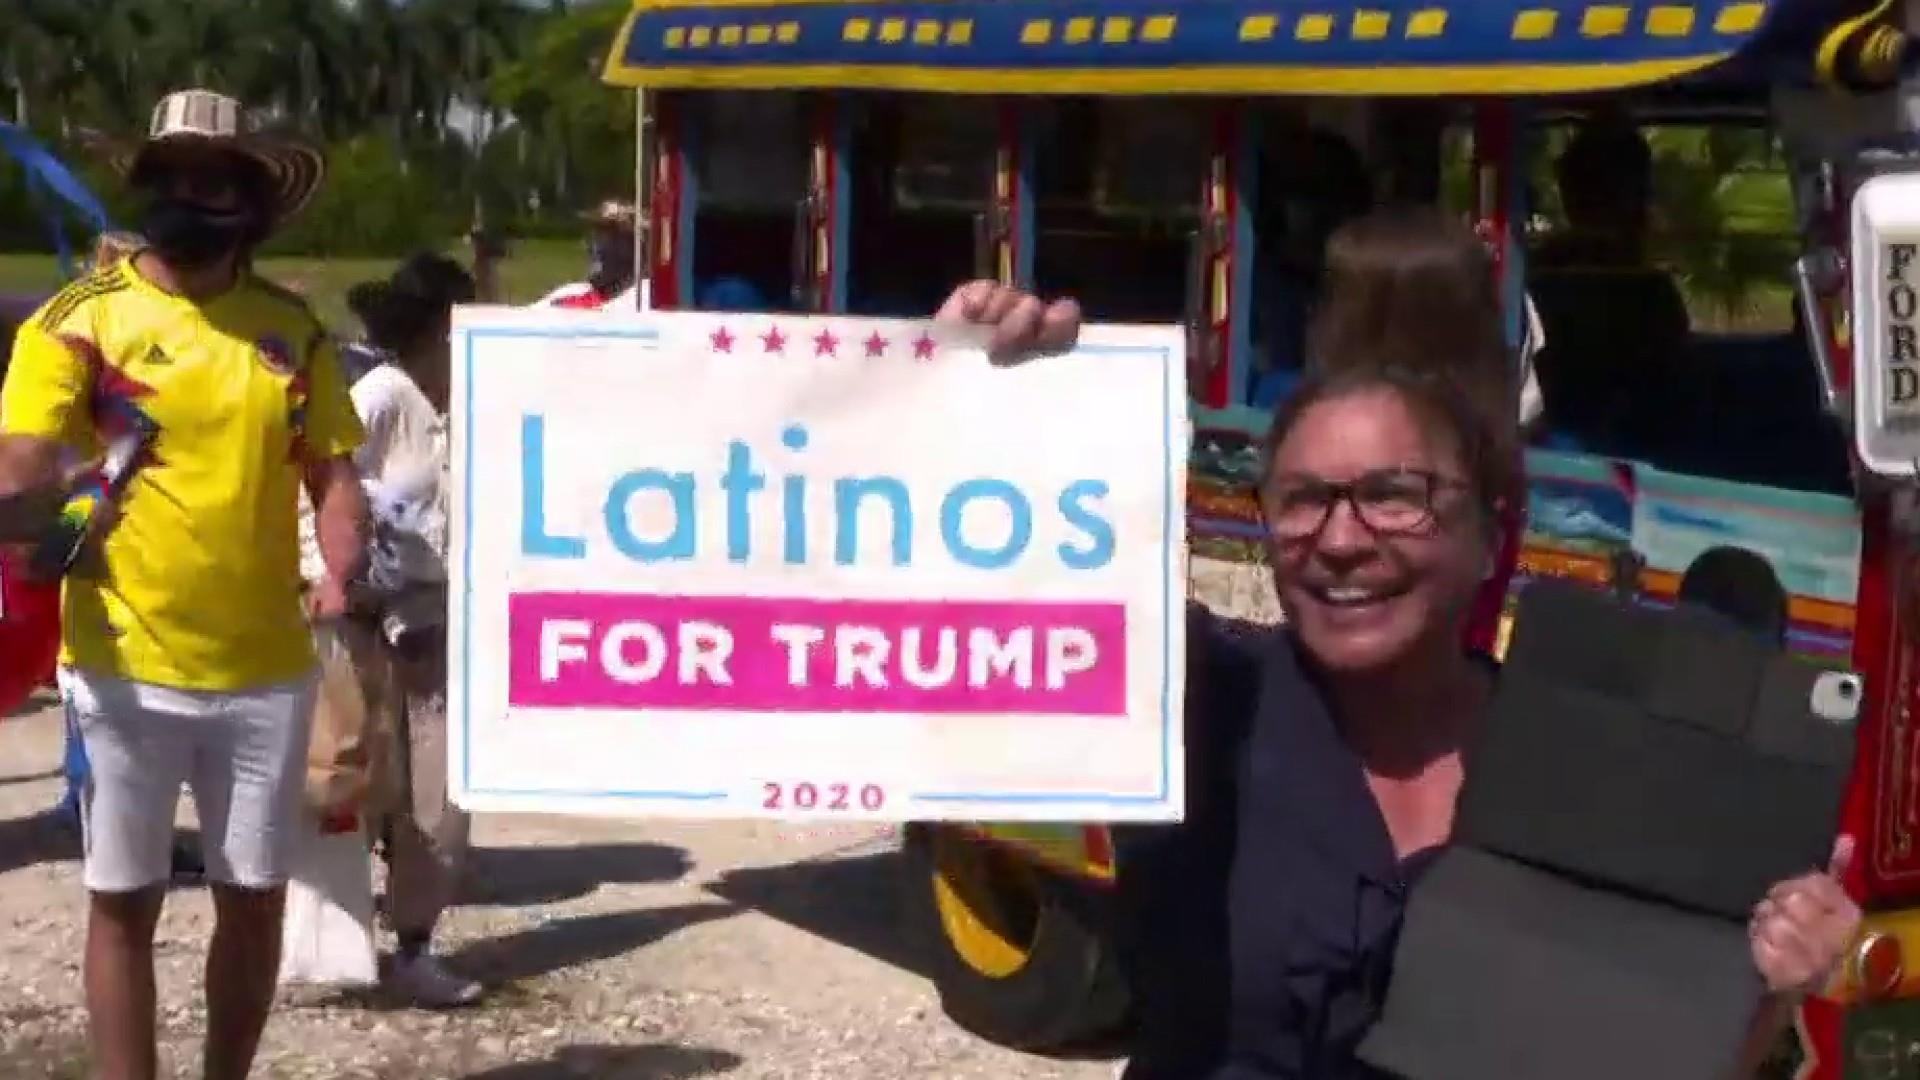 Trump, Biden court Latino voters in Florida as election day nears